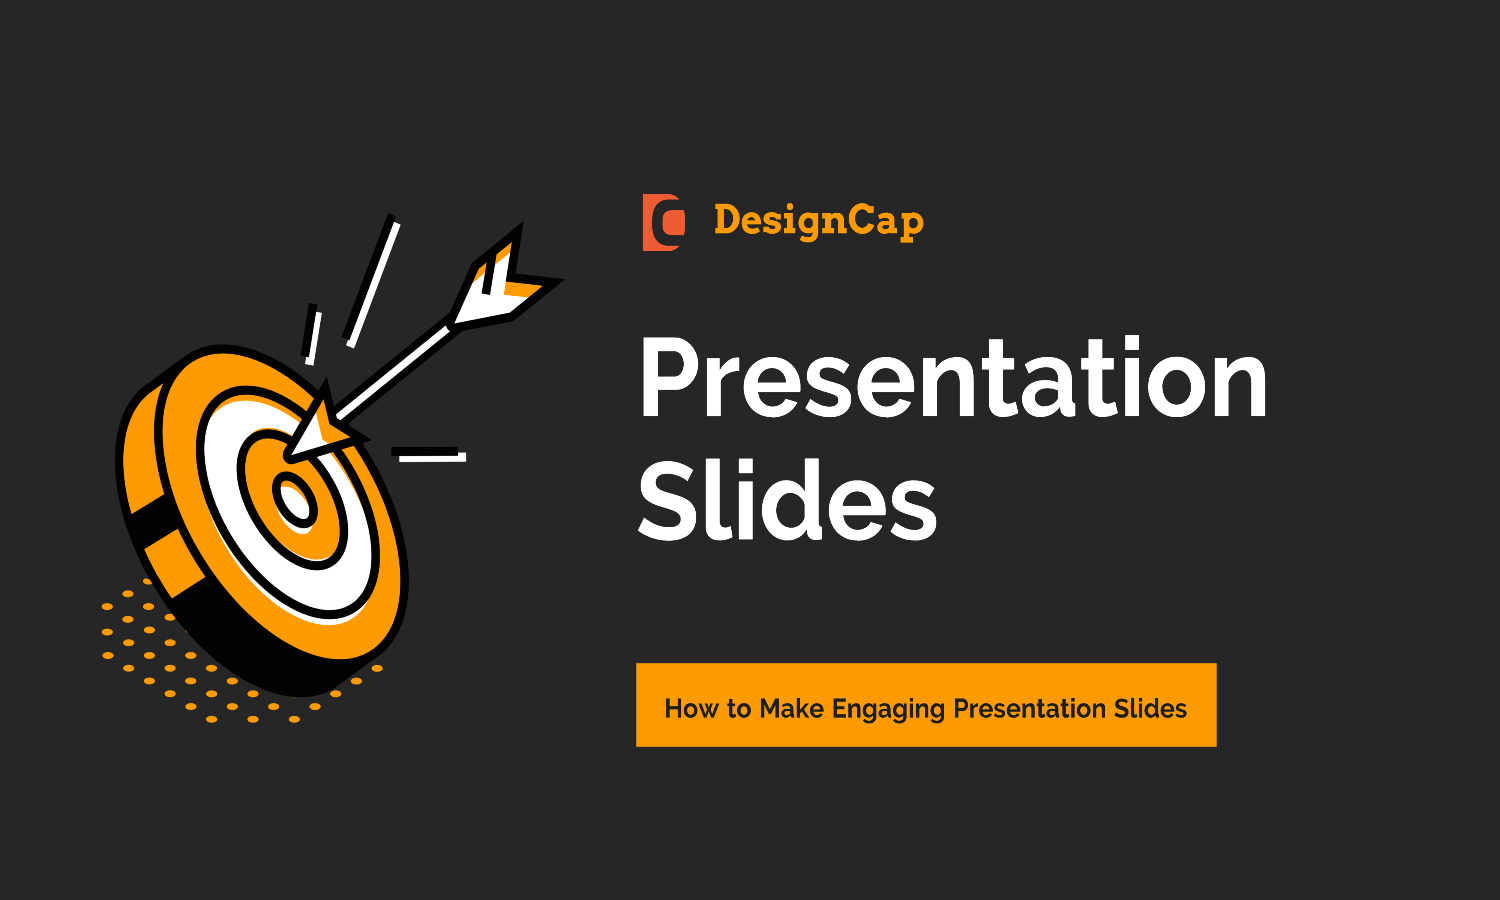 How To Make Engaging Presentation Slides With DesignCap